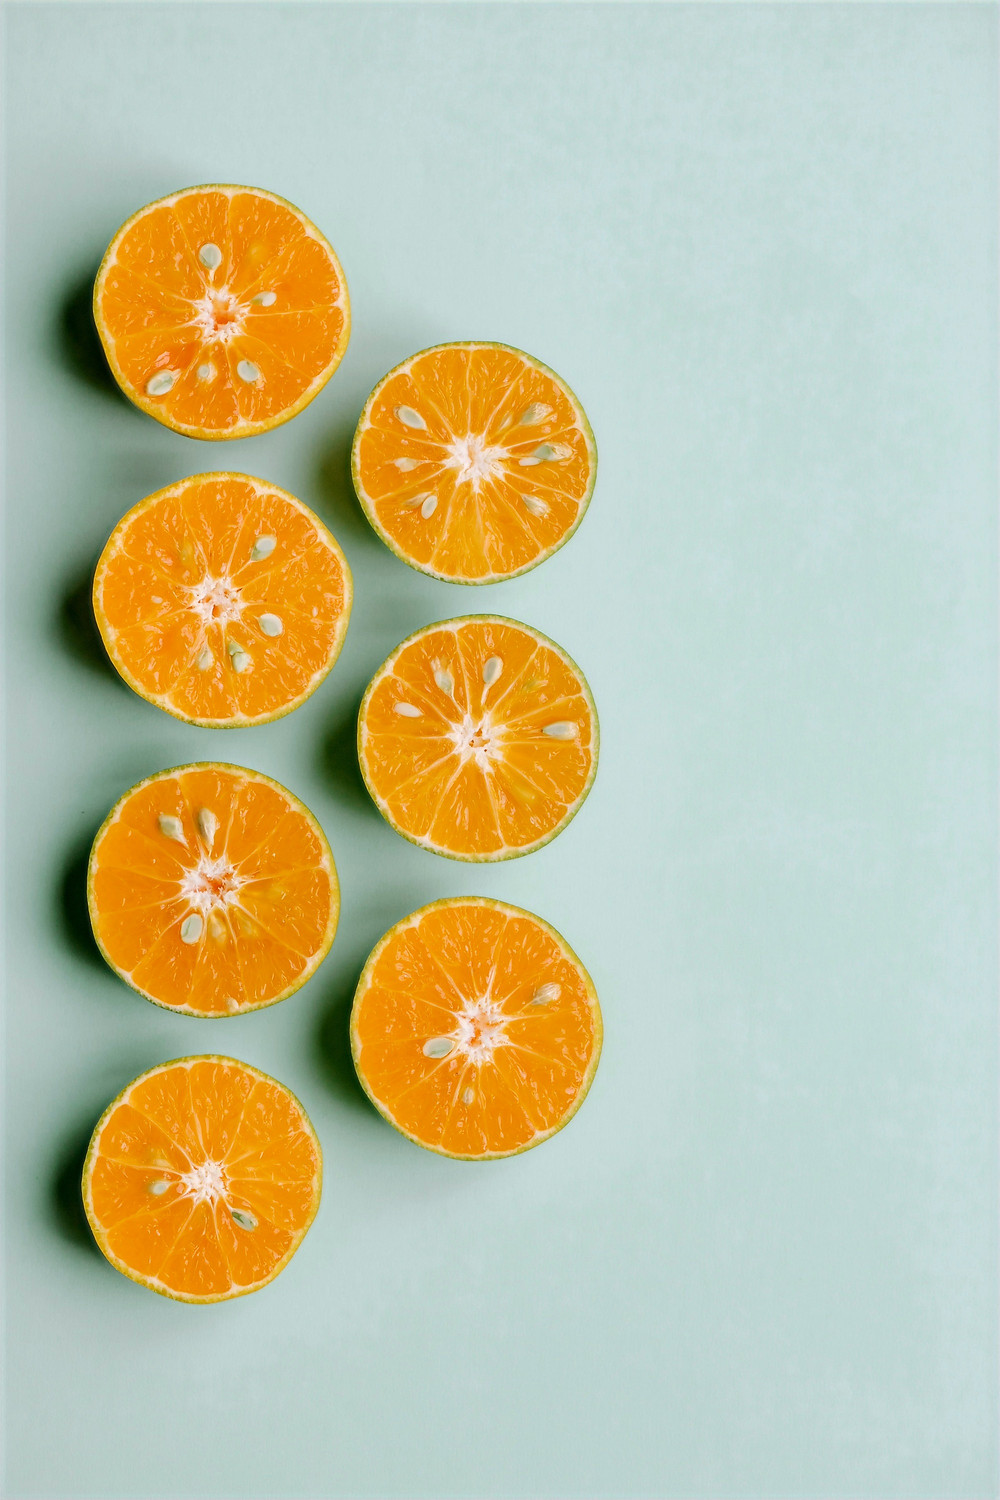 Seven orange halves arranged neatly for a photo shoot.